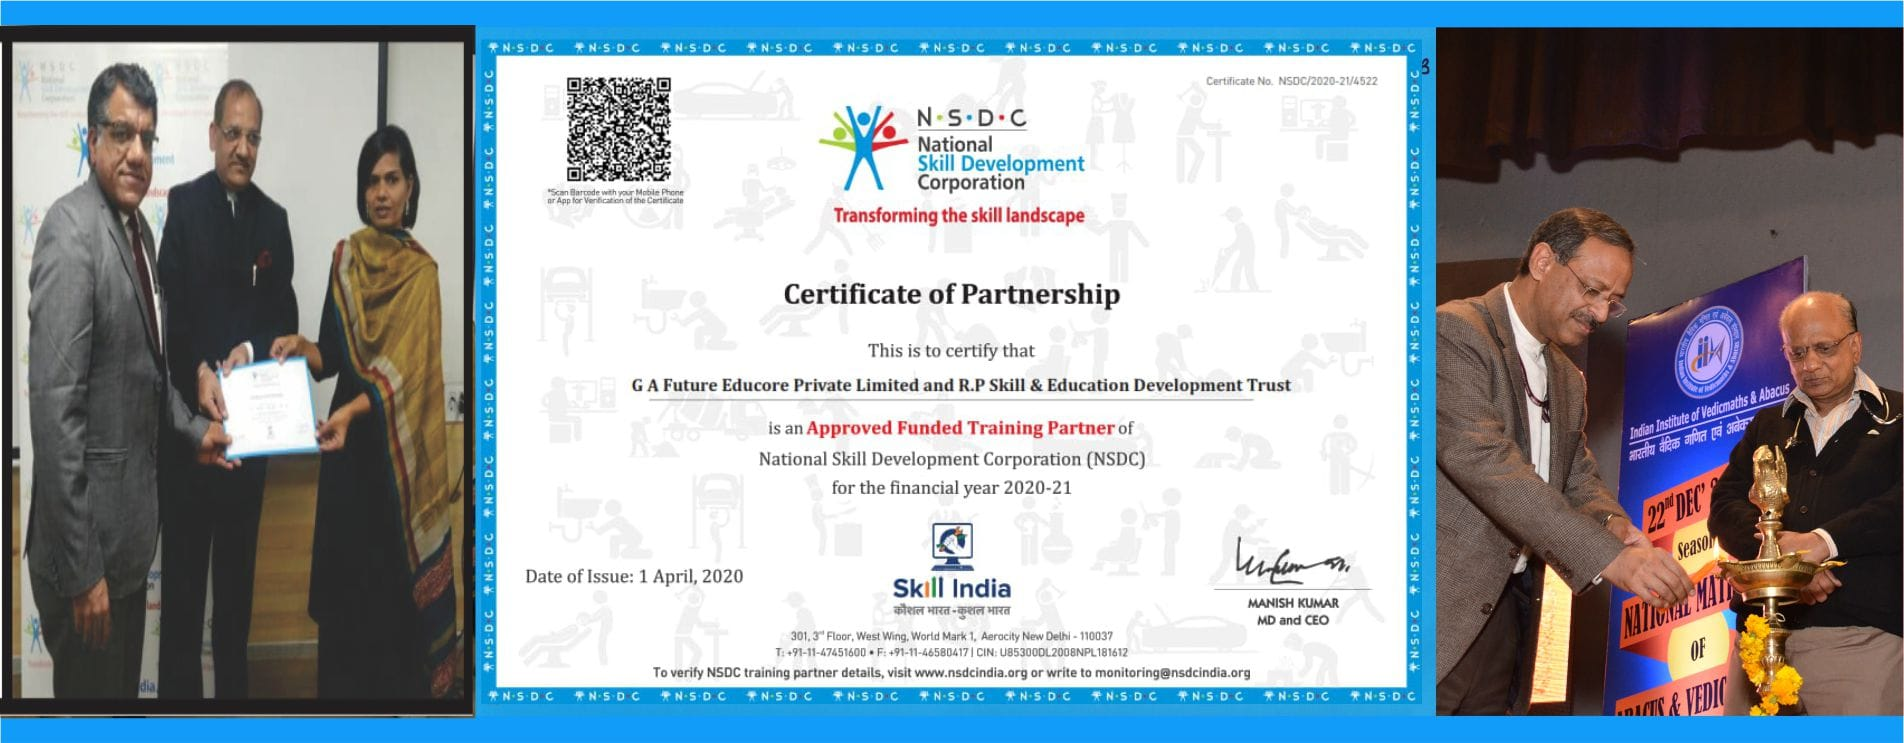 NSDC Certificate of Partnership